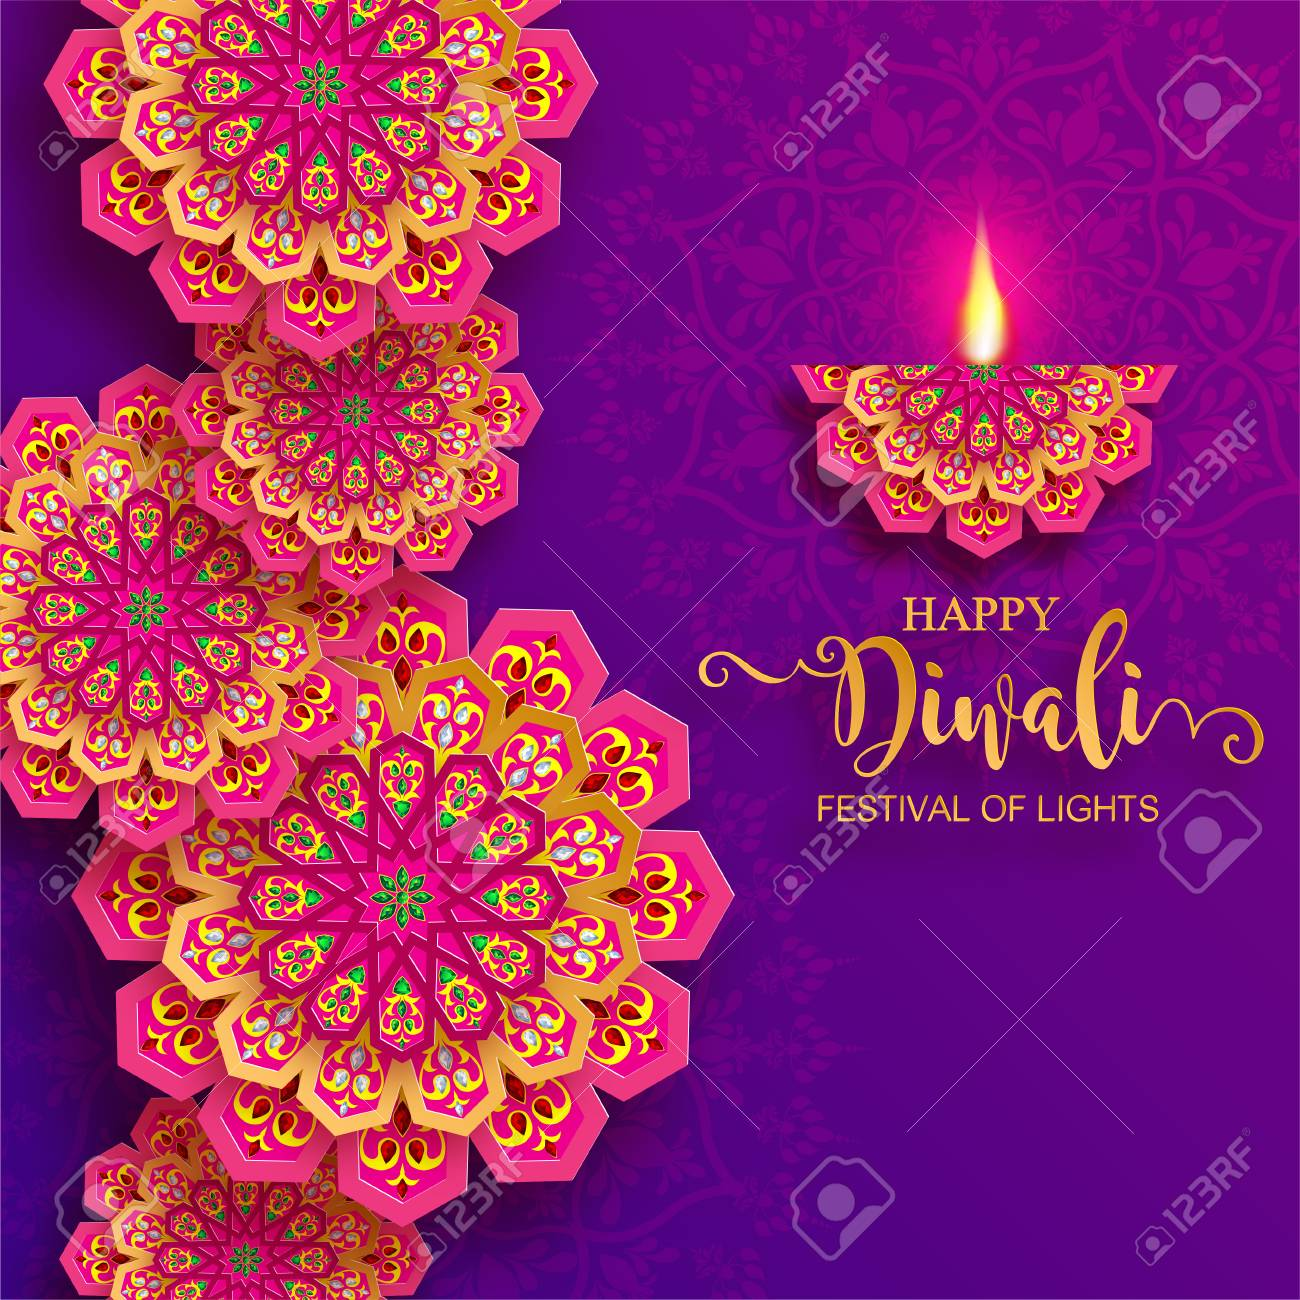 Happy Diwali festival card with gold diya patterned and crystals on paper color Background. - 109285134